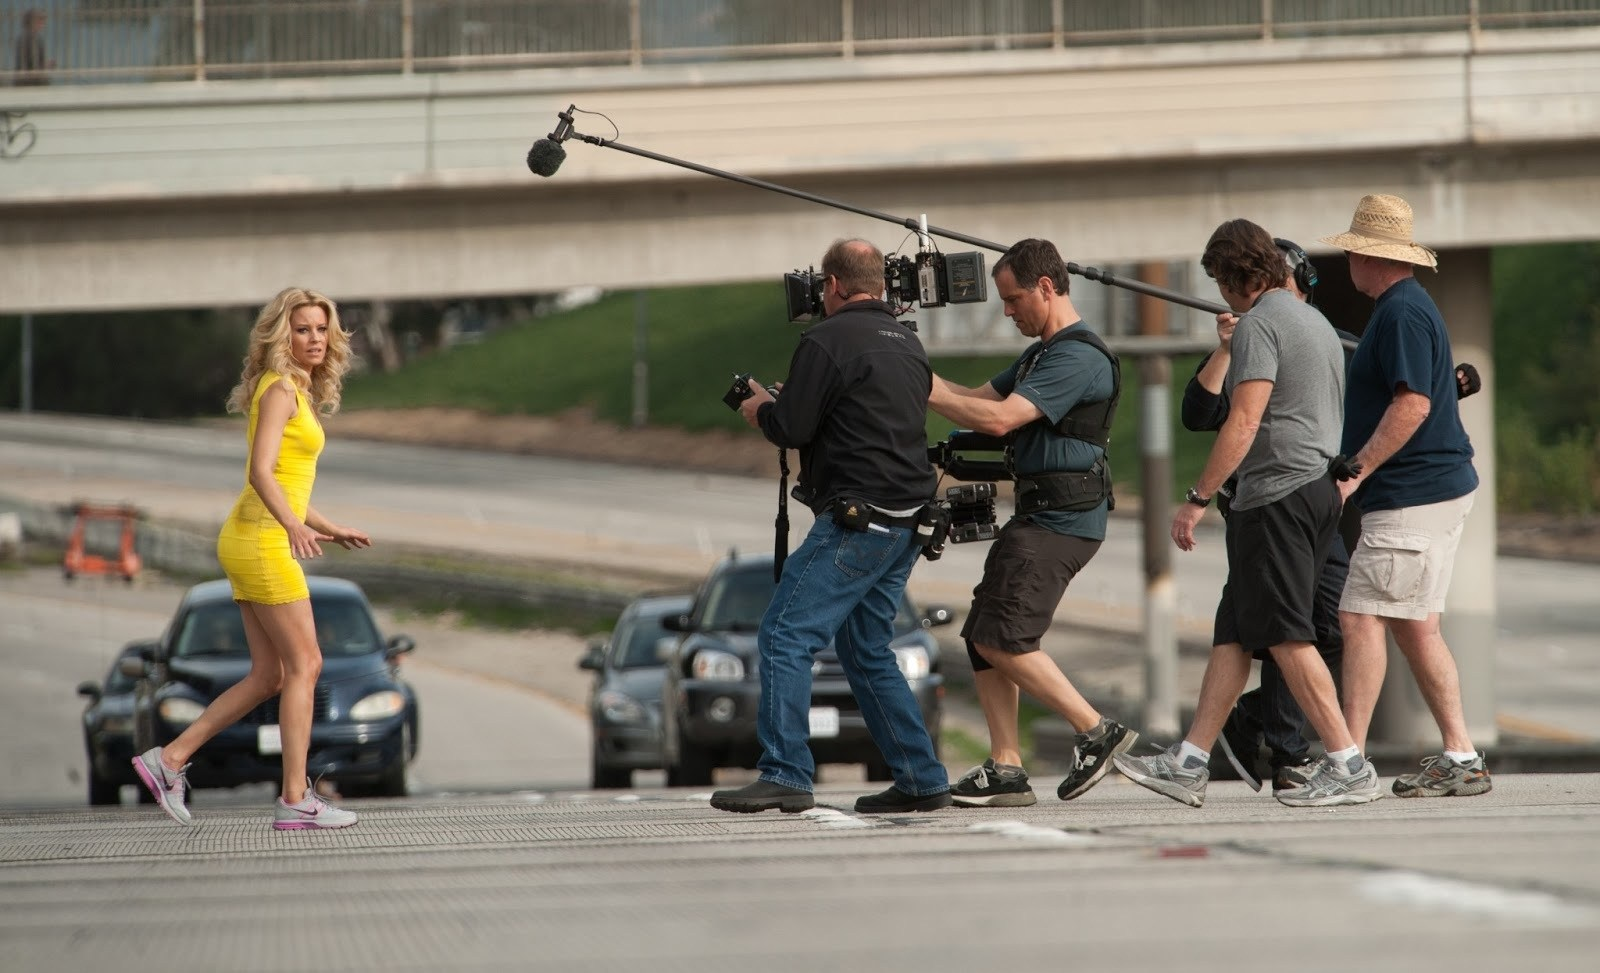 Filming Walk of Shame (2014) Behind the Scenes